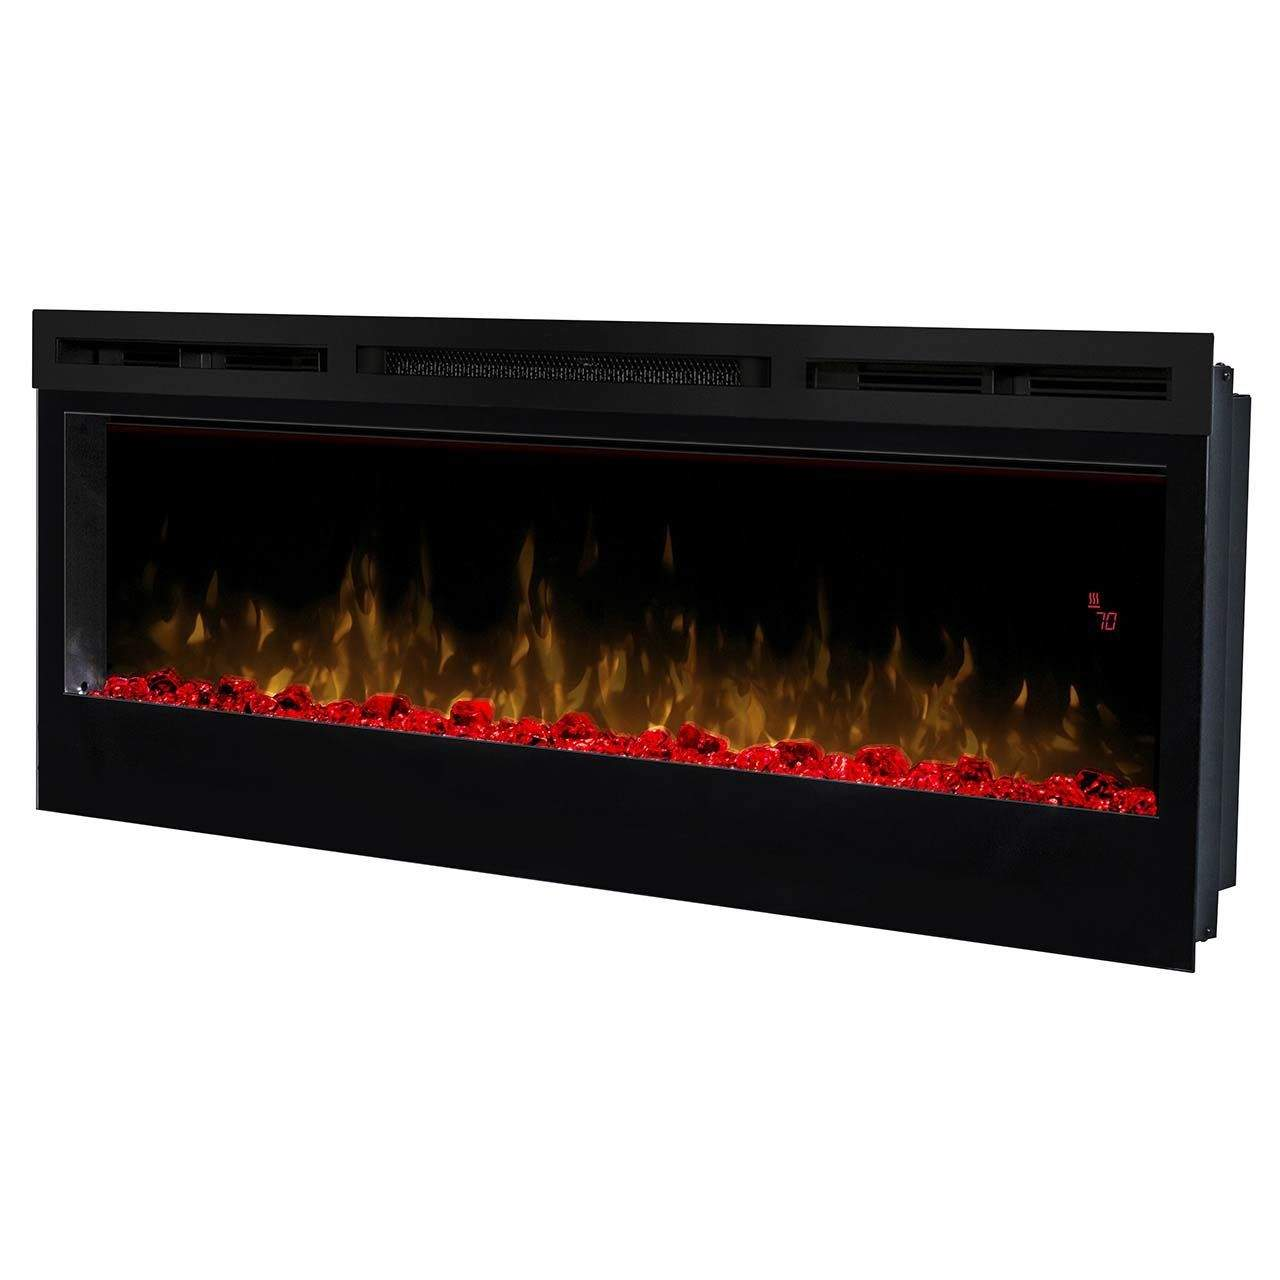 Dimplex BLF5051 Prism Series Electric Fireplace 50 Inch